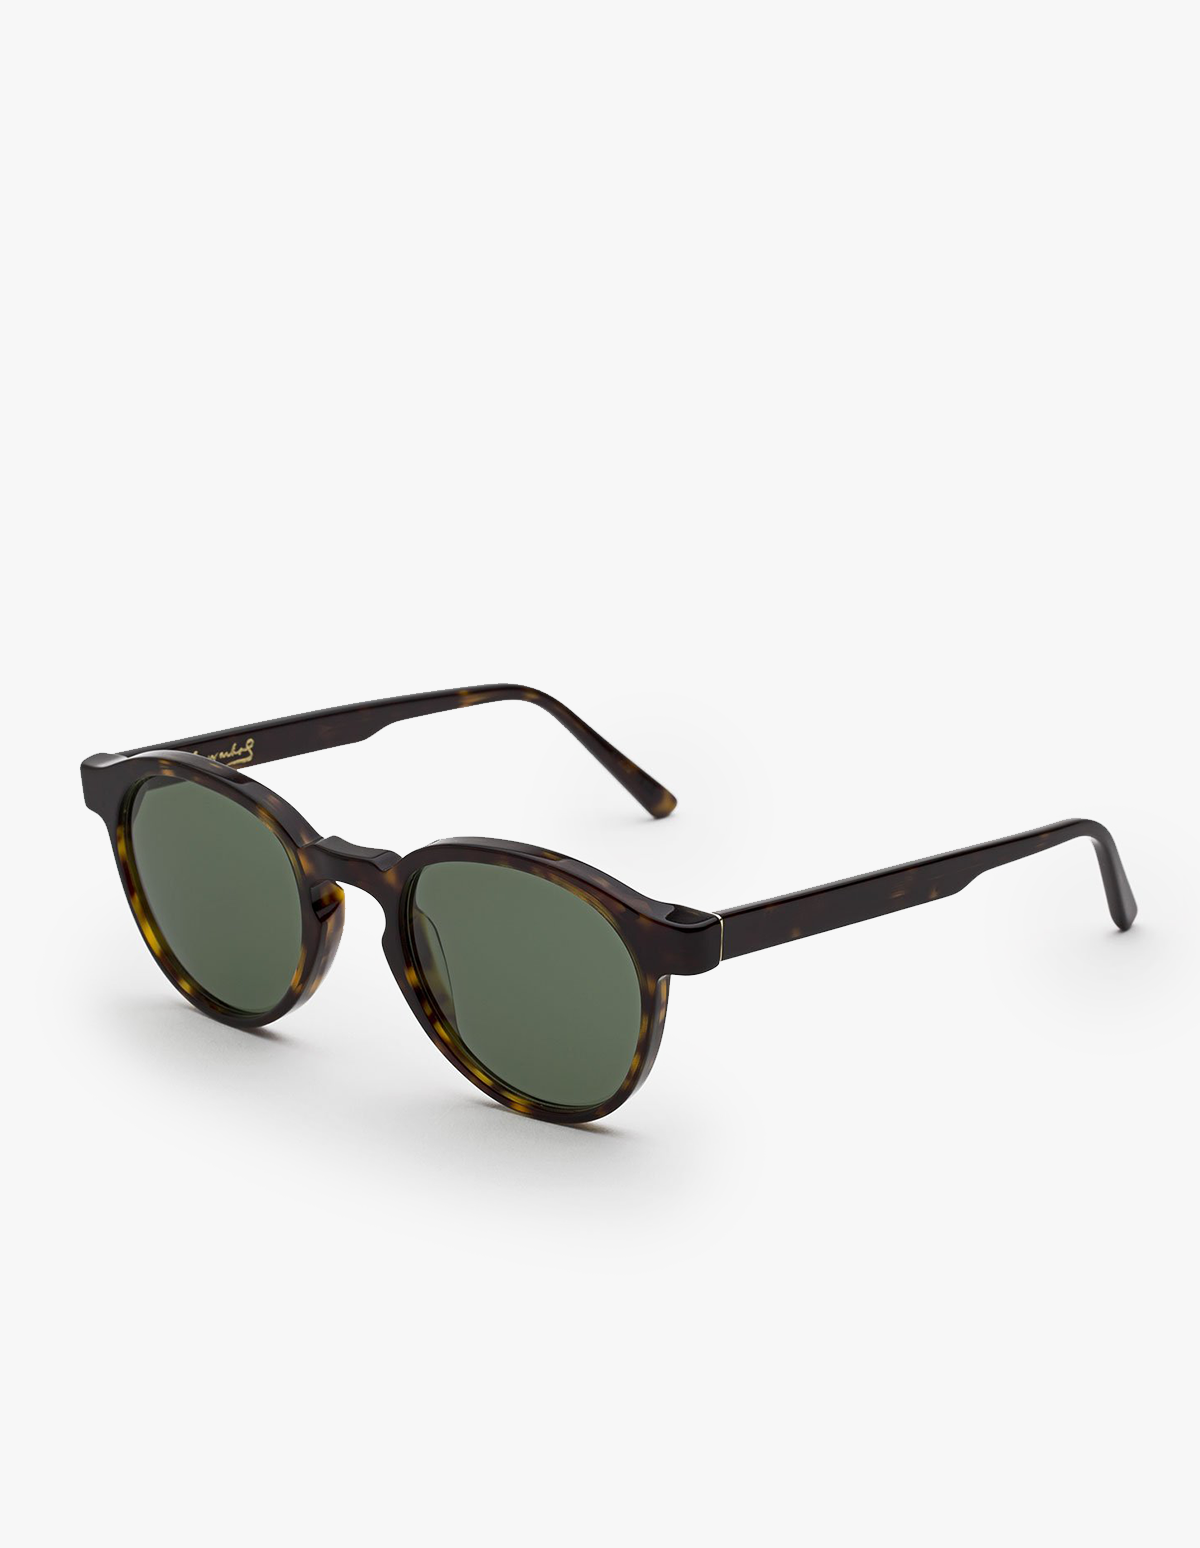 Retrosuperfuture Andy Warhol The Iconic Series Sunglasses in 3627 Green